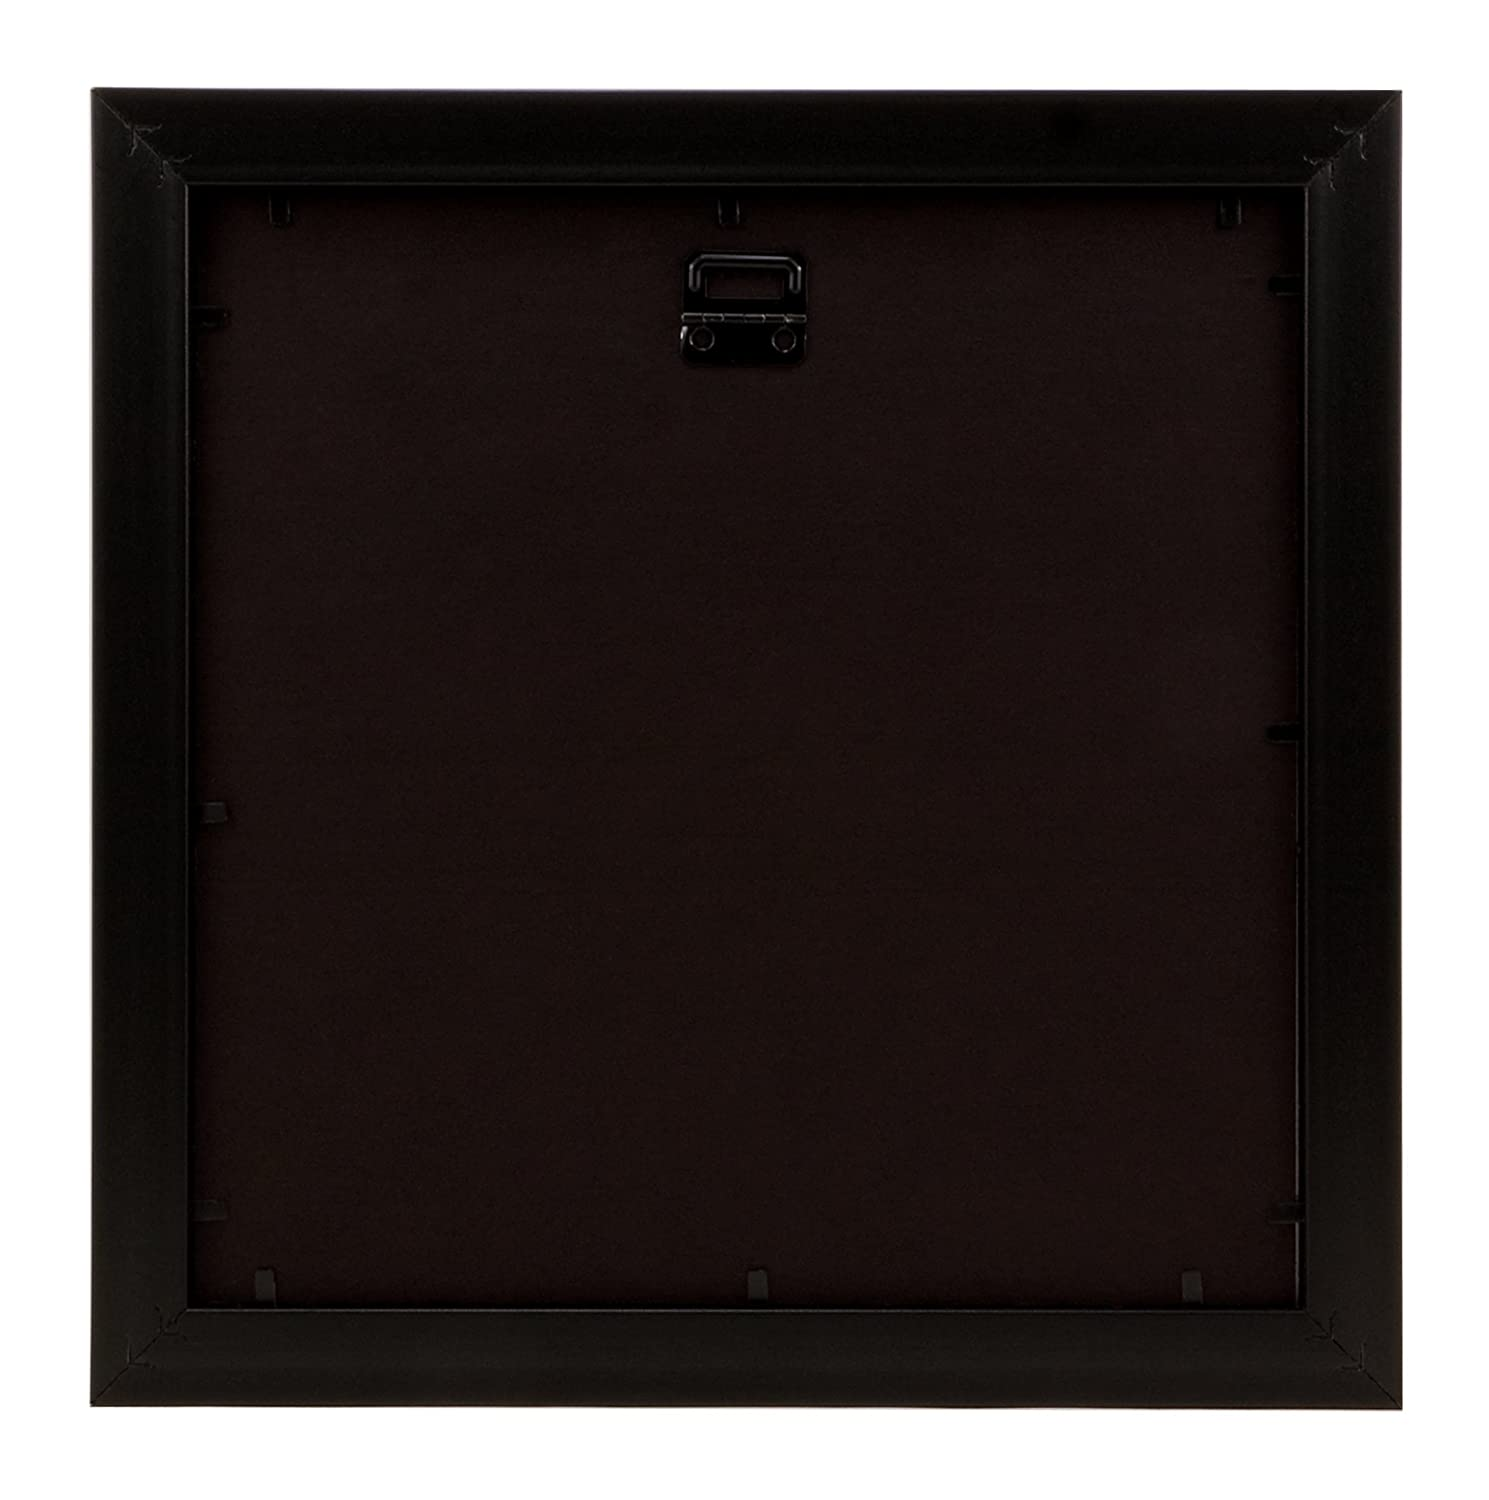 Bordertrends Nova 10x106x6 Inch Square Wall Frame Black With